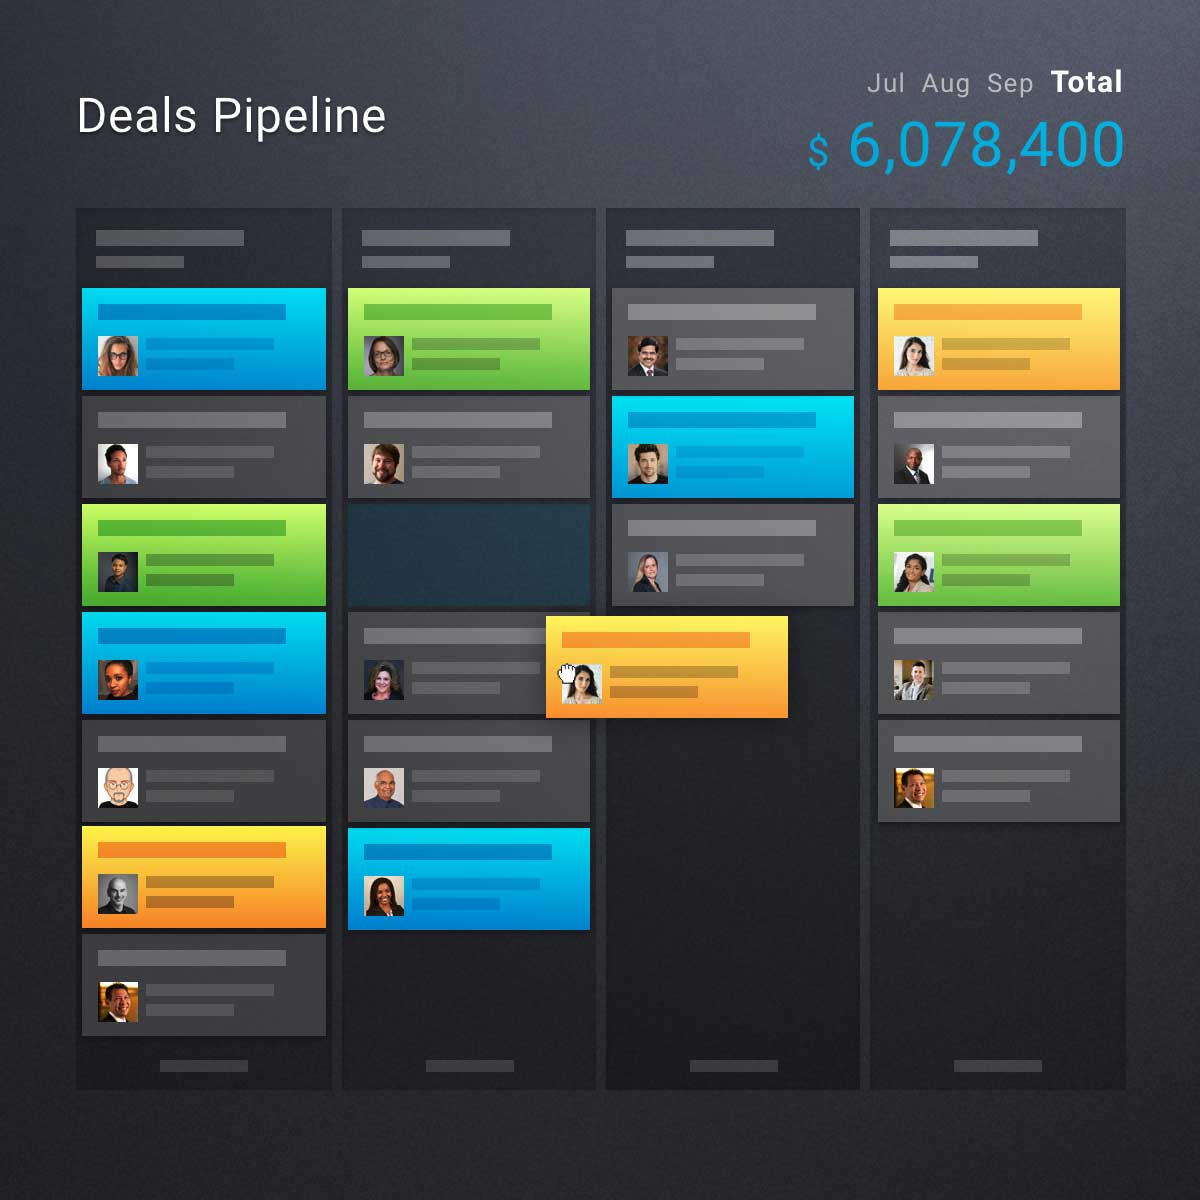 Deals pipeline with revenue predictions